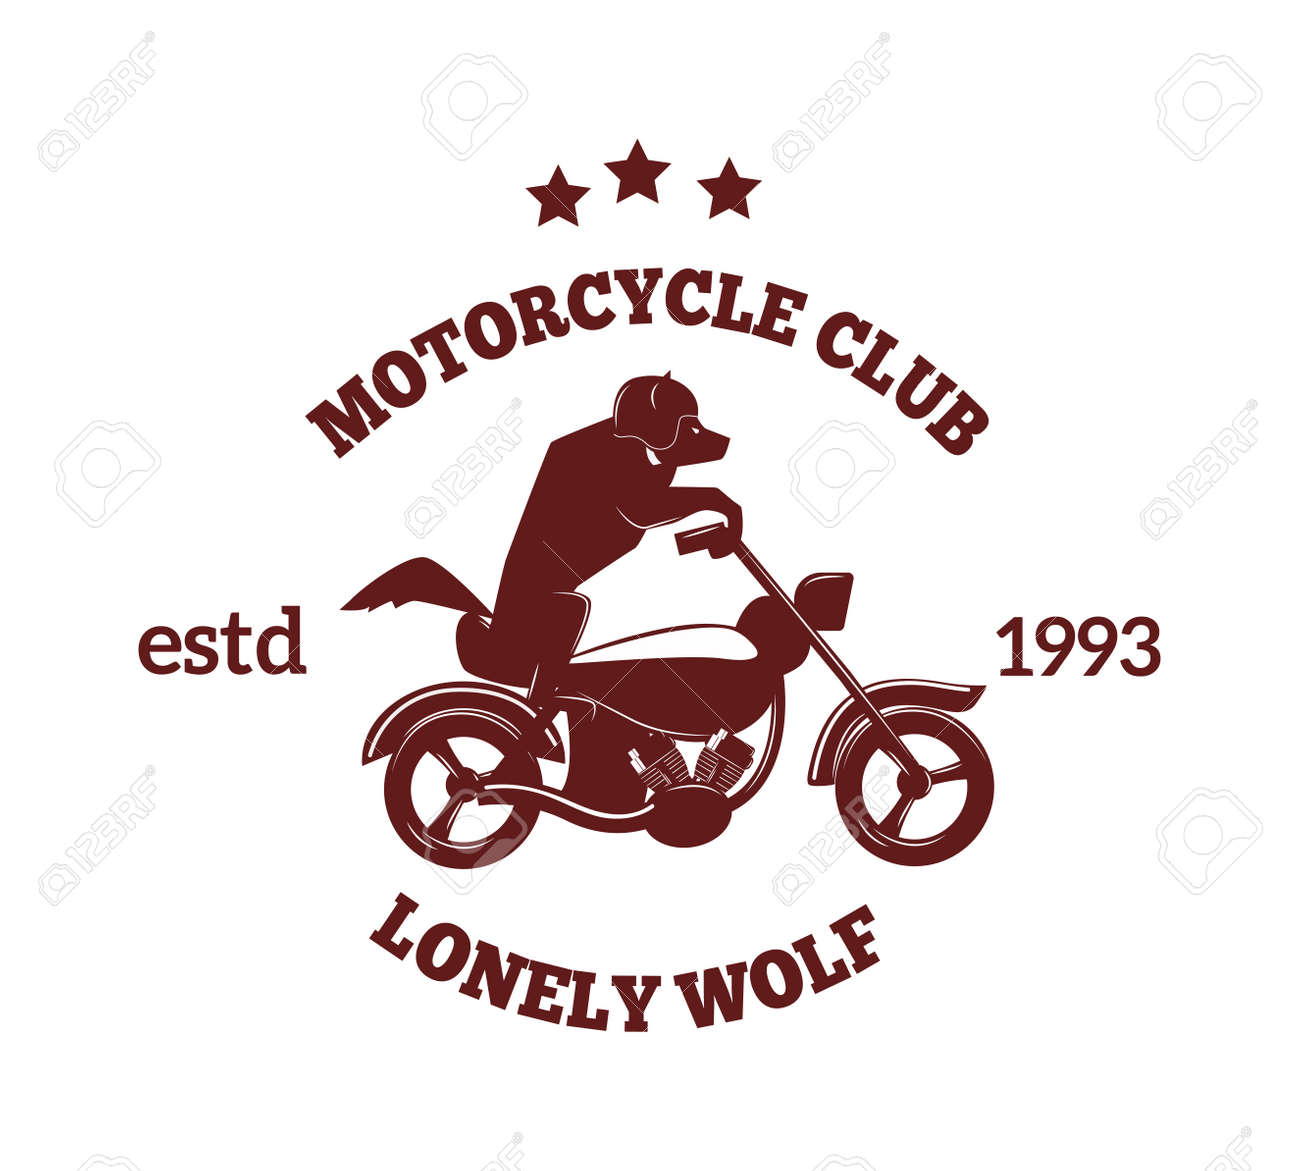 hight resolution of motorcycle club logo vector on dirt bike engine diagram with labelsmotorcycle label badge vector black icon